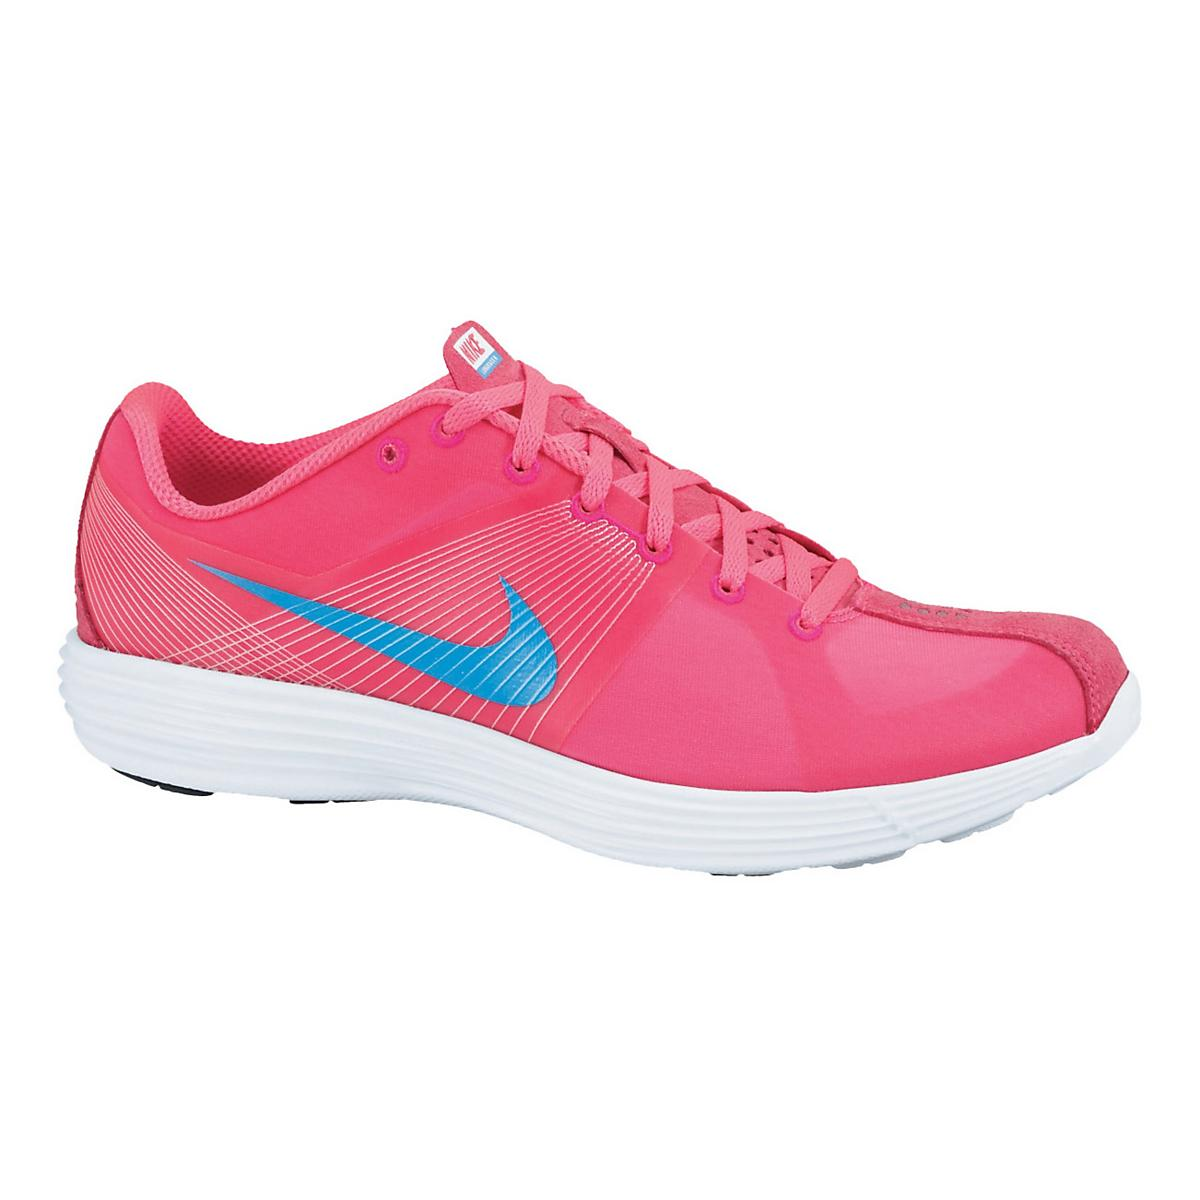 9bf59ee062fd Womens Nike LunaRacer+ Racing Shoe at Road Runner Sports